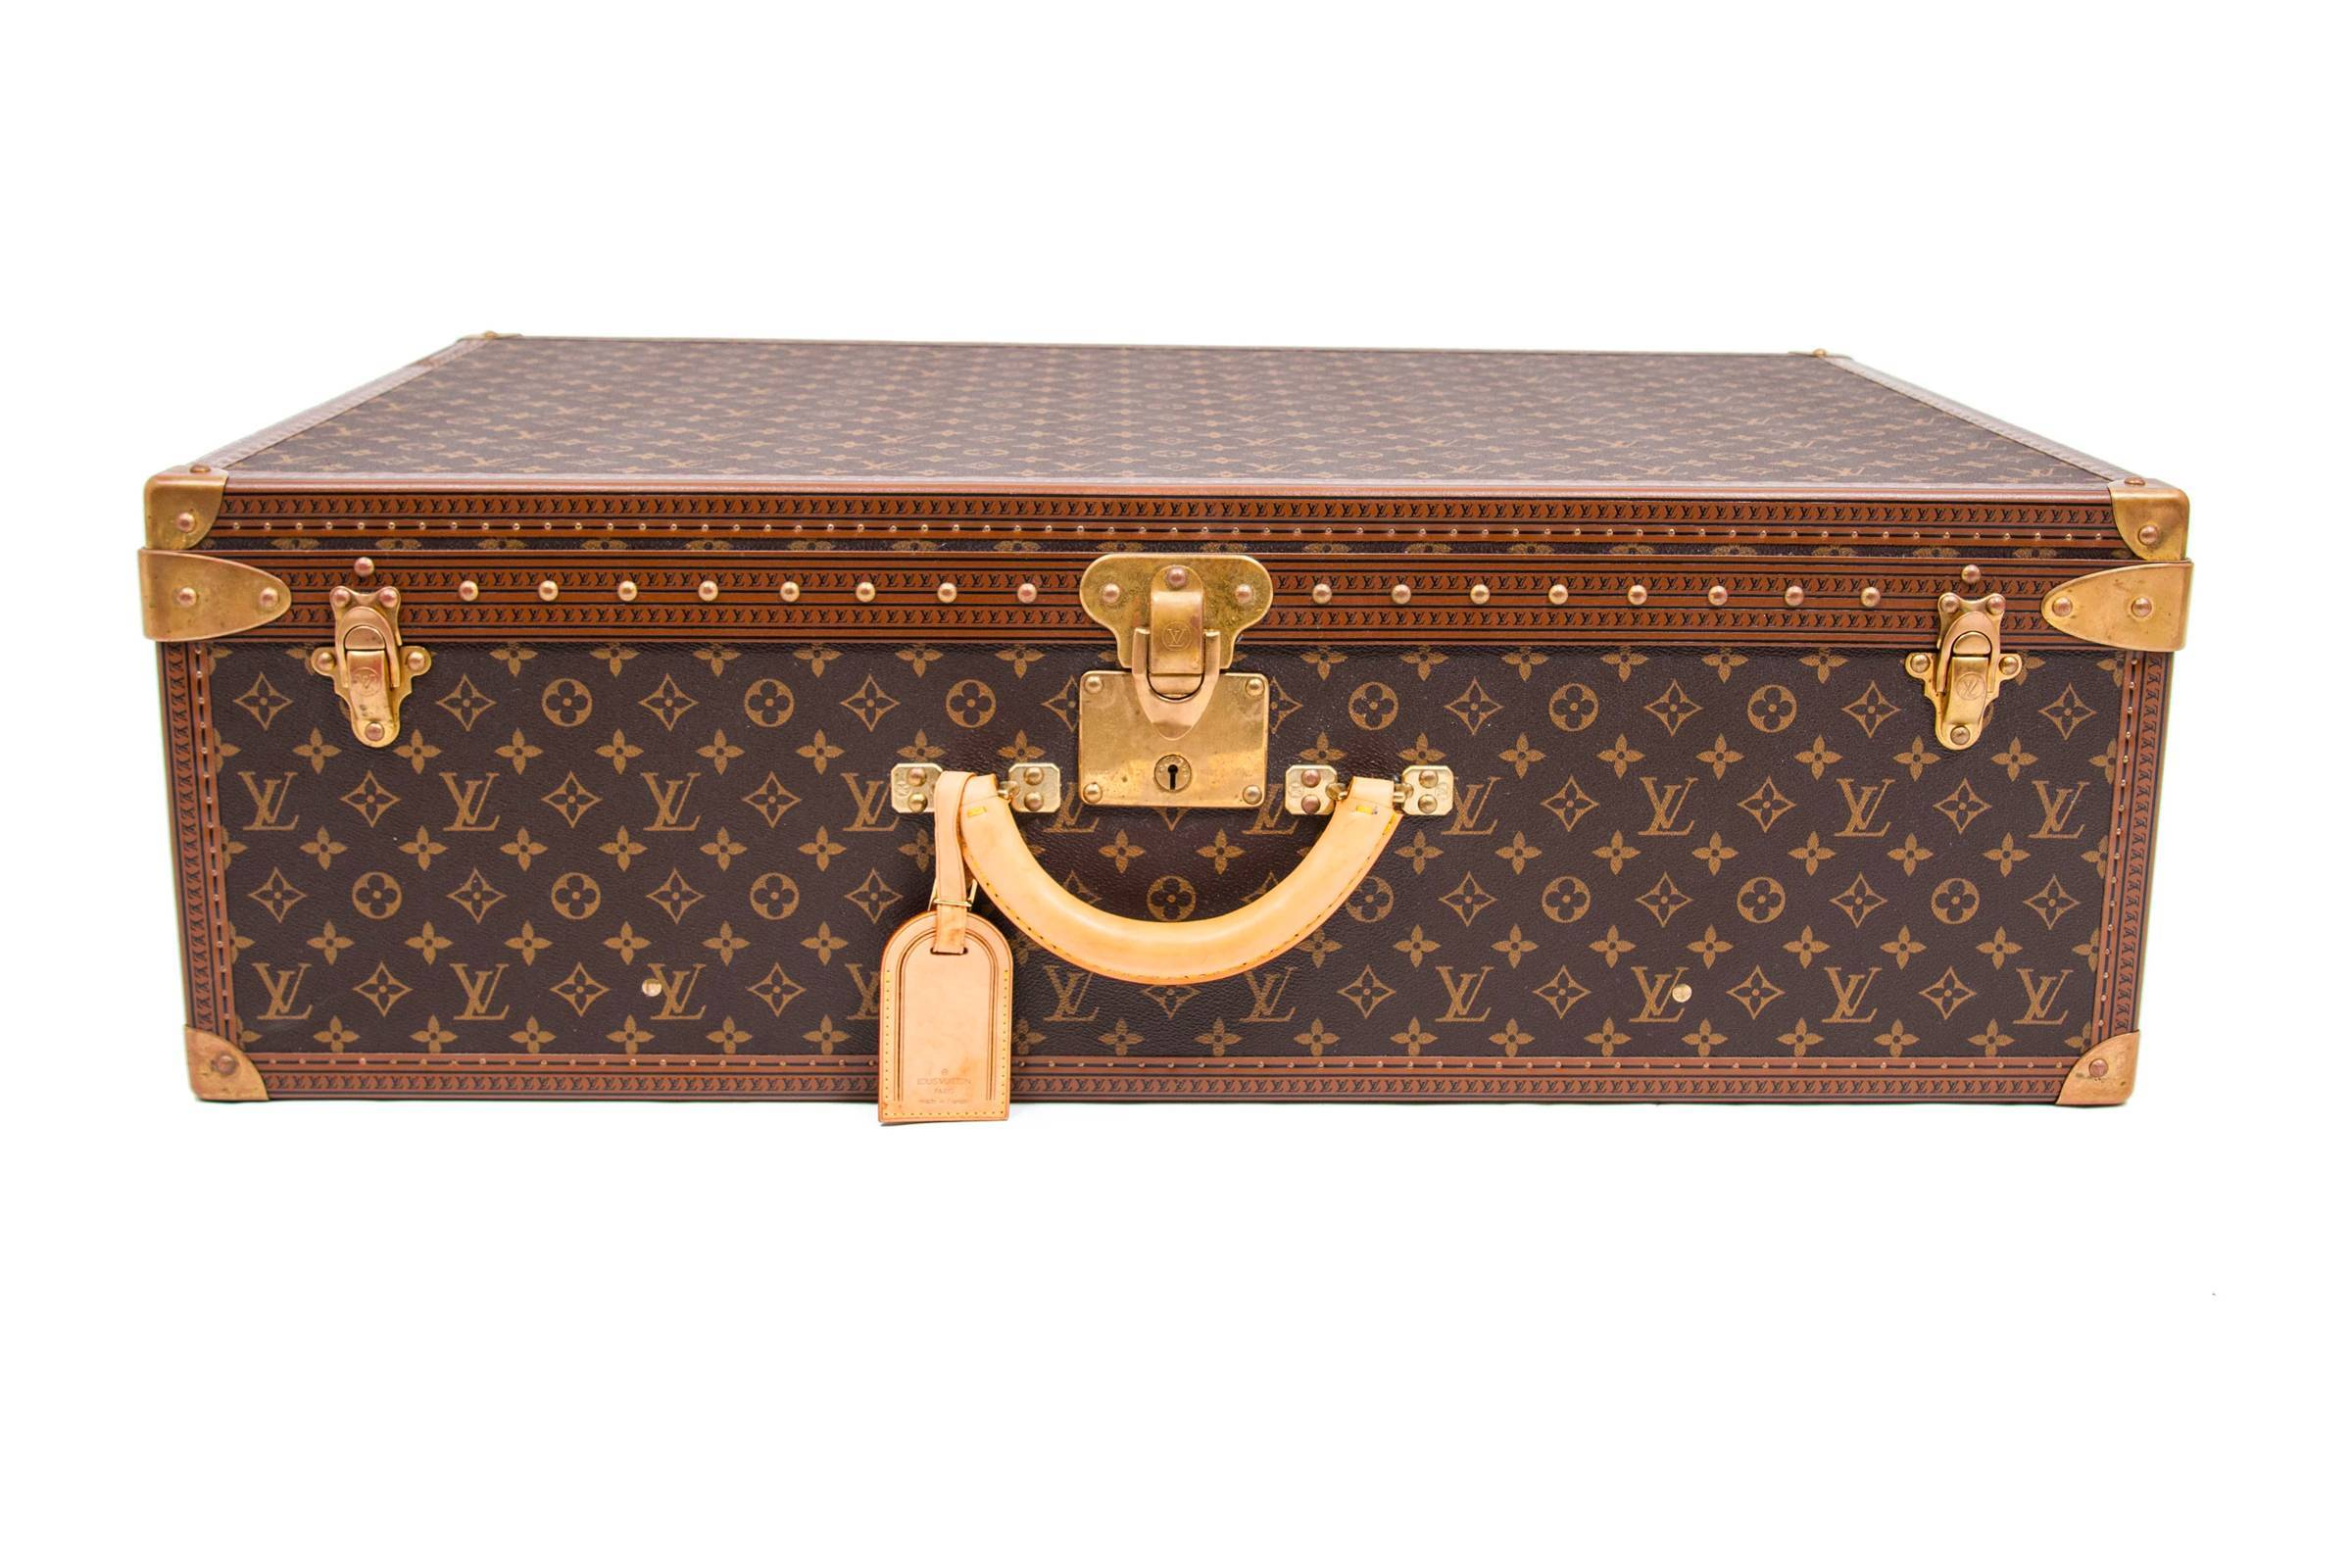 Louis Vuitton Alzer 80 Hardsided Suitcase